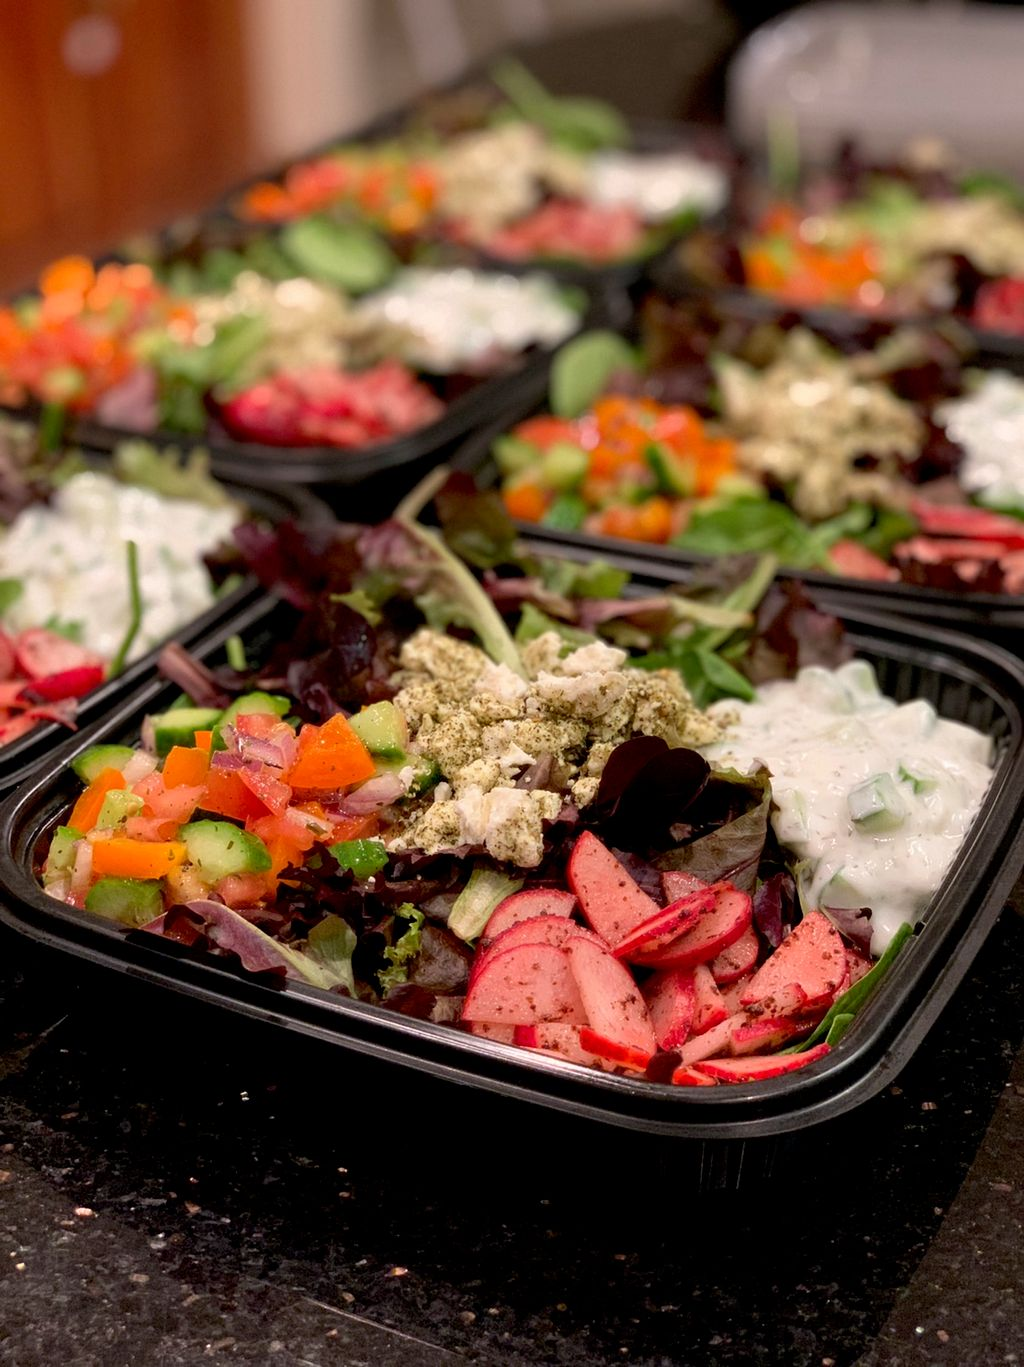 Cravings Catering's